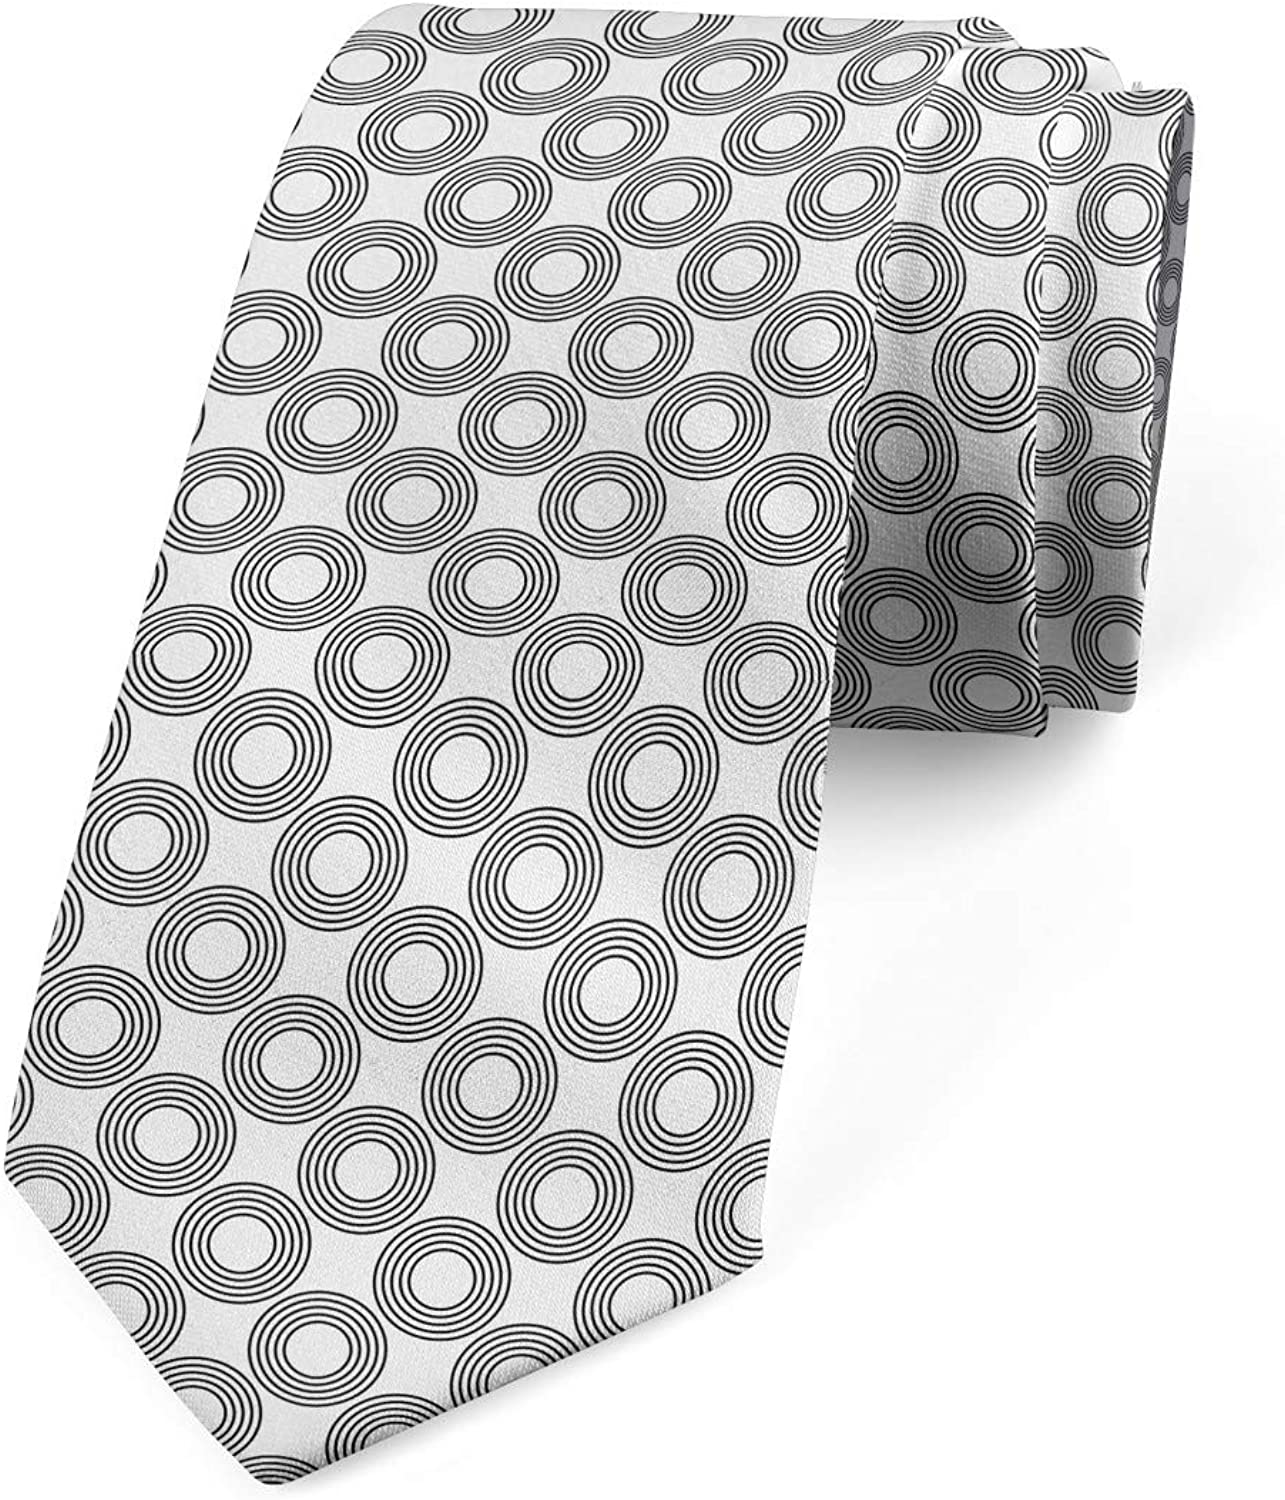 Ambesonne Necktie, Rings with Curves, Dress Tie, 3.7